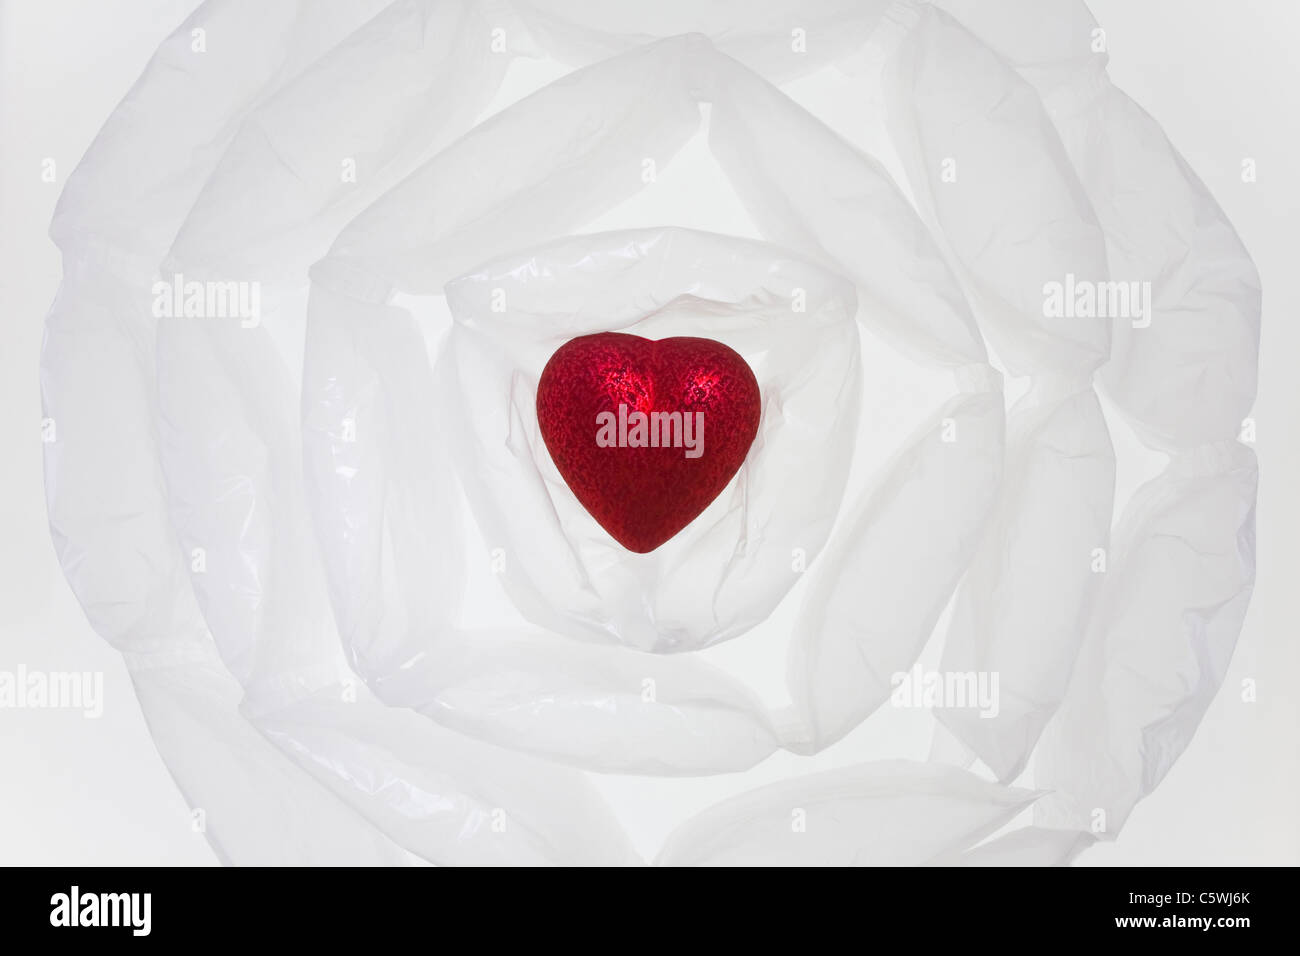 Heart in air cushion, elevated view - Stock Image